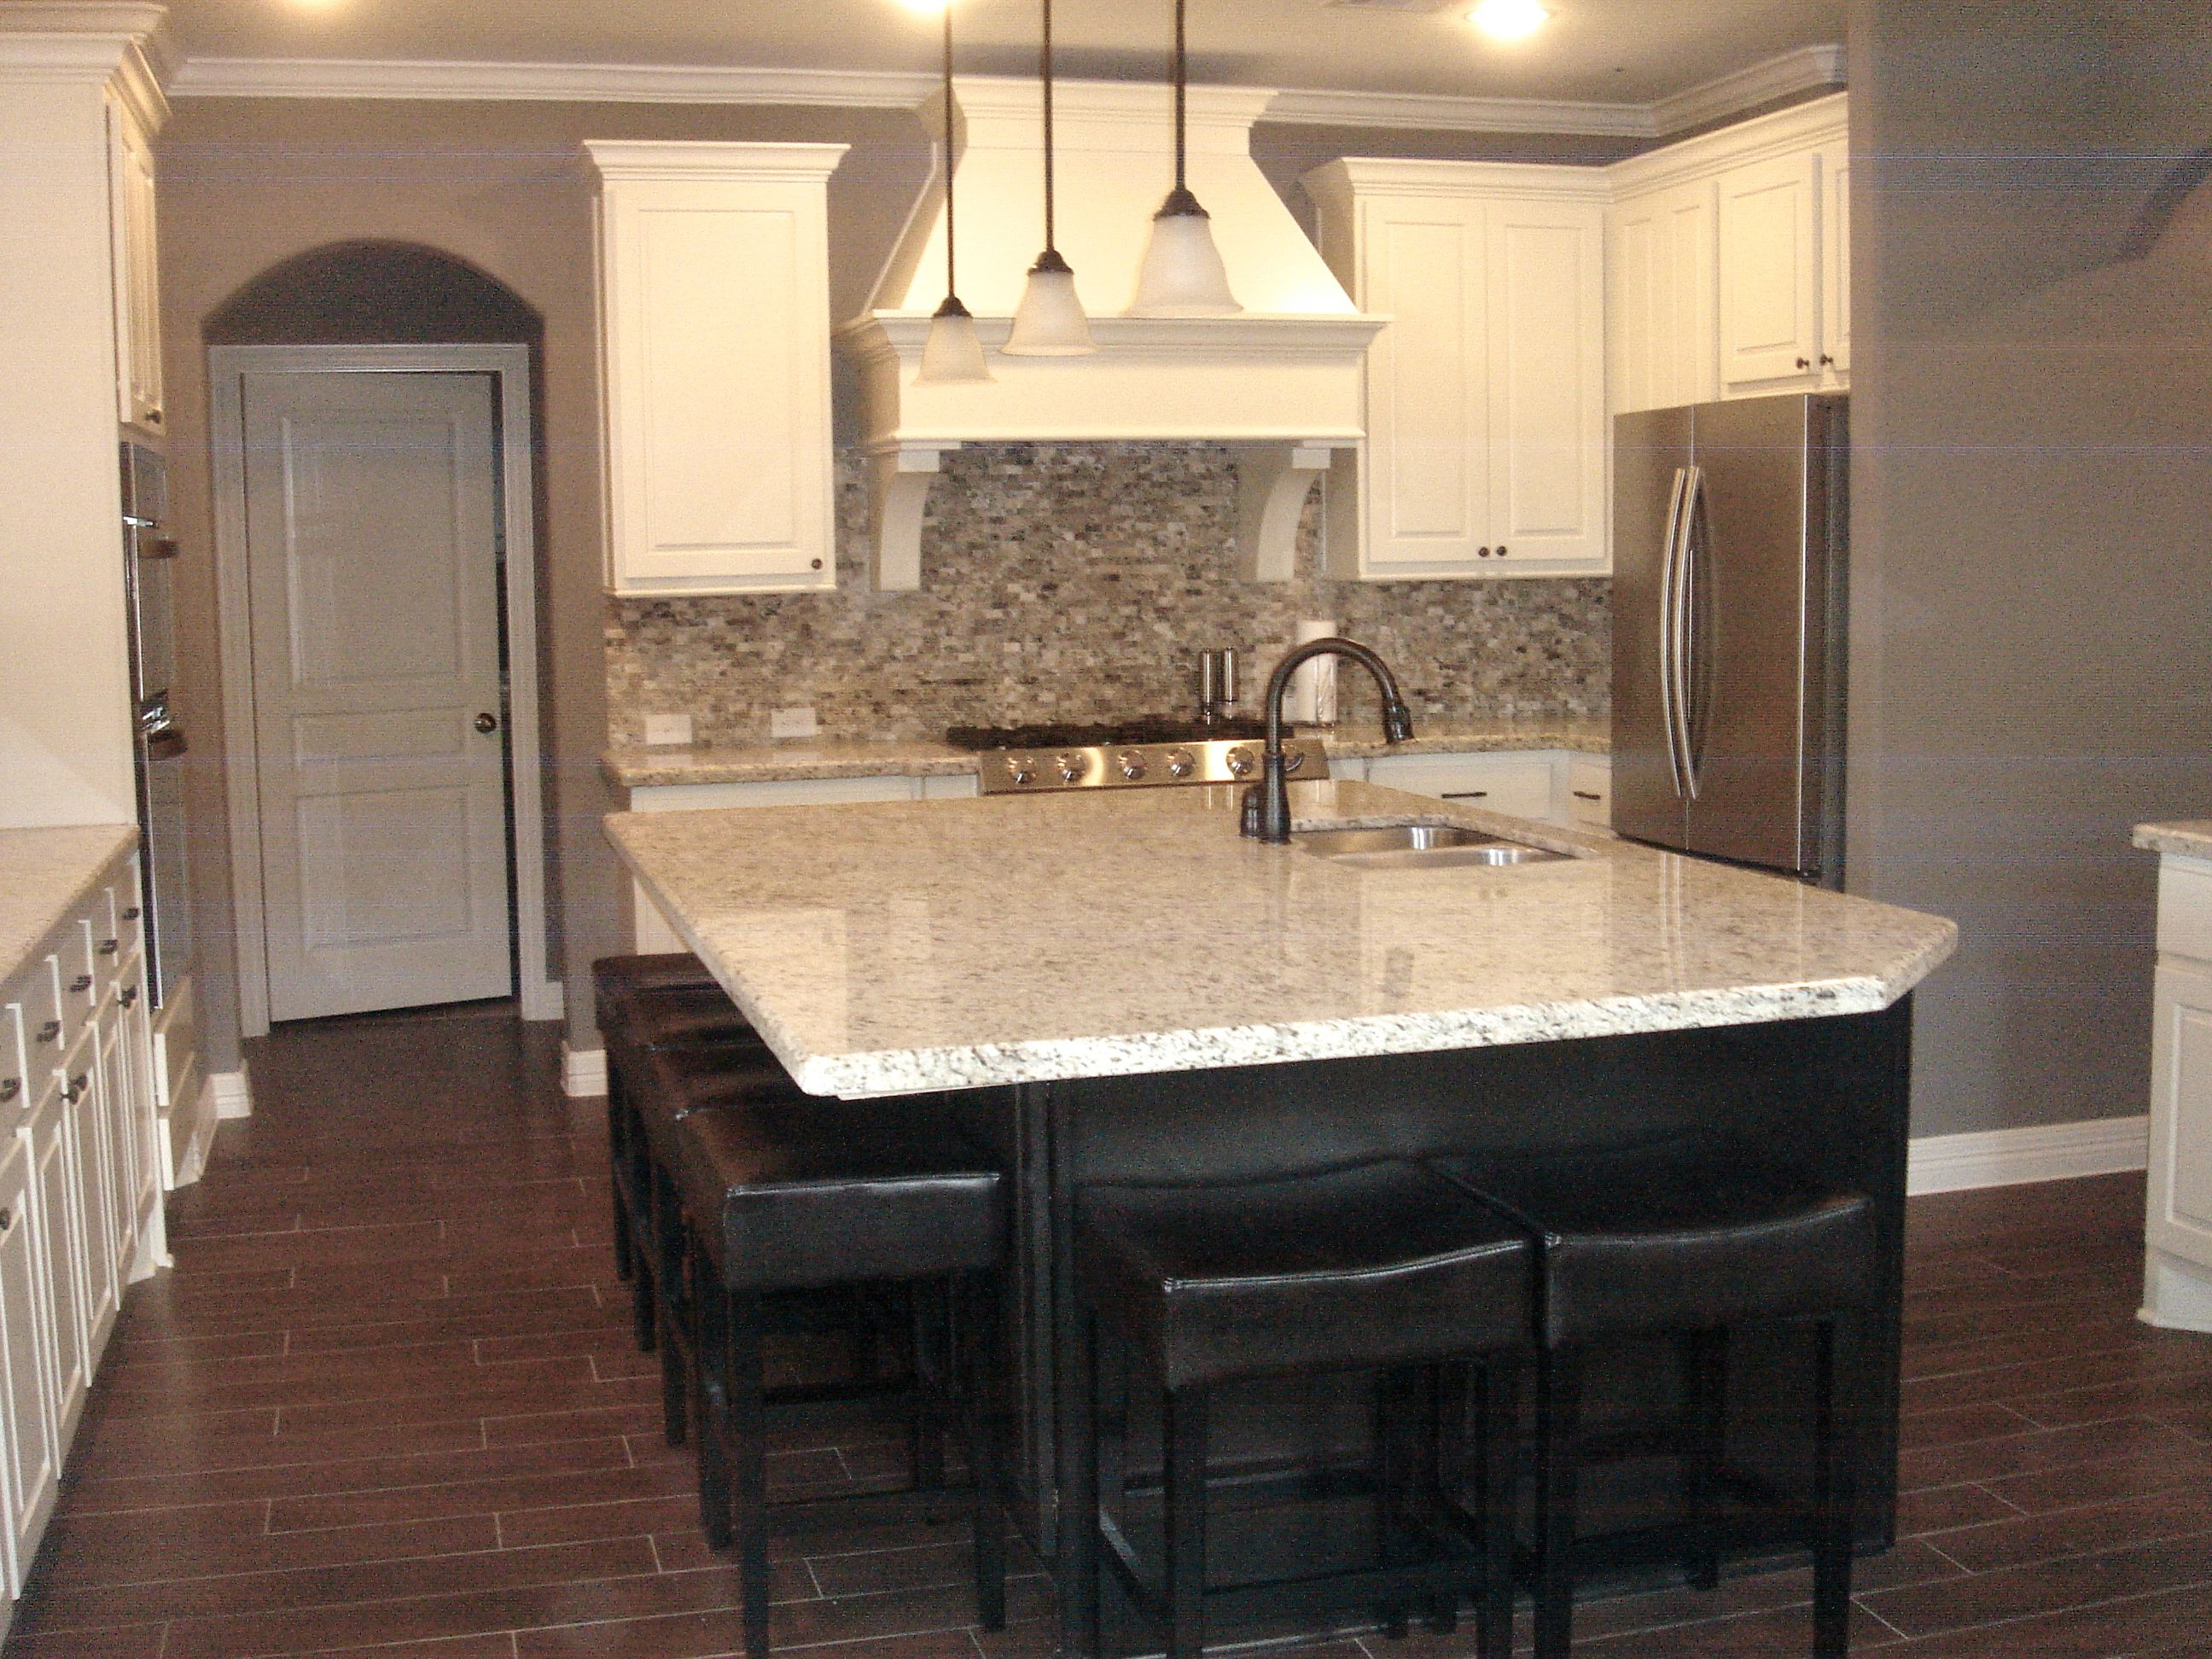 kitchen wood look tile dark island white cabinets light granite kitchen wood look tile dark island white cabinets light granite stone backsplash